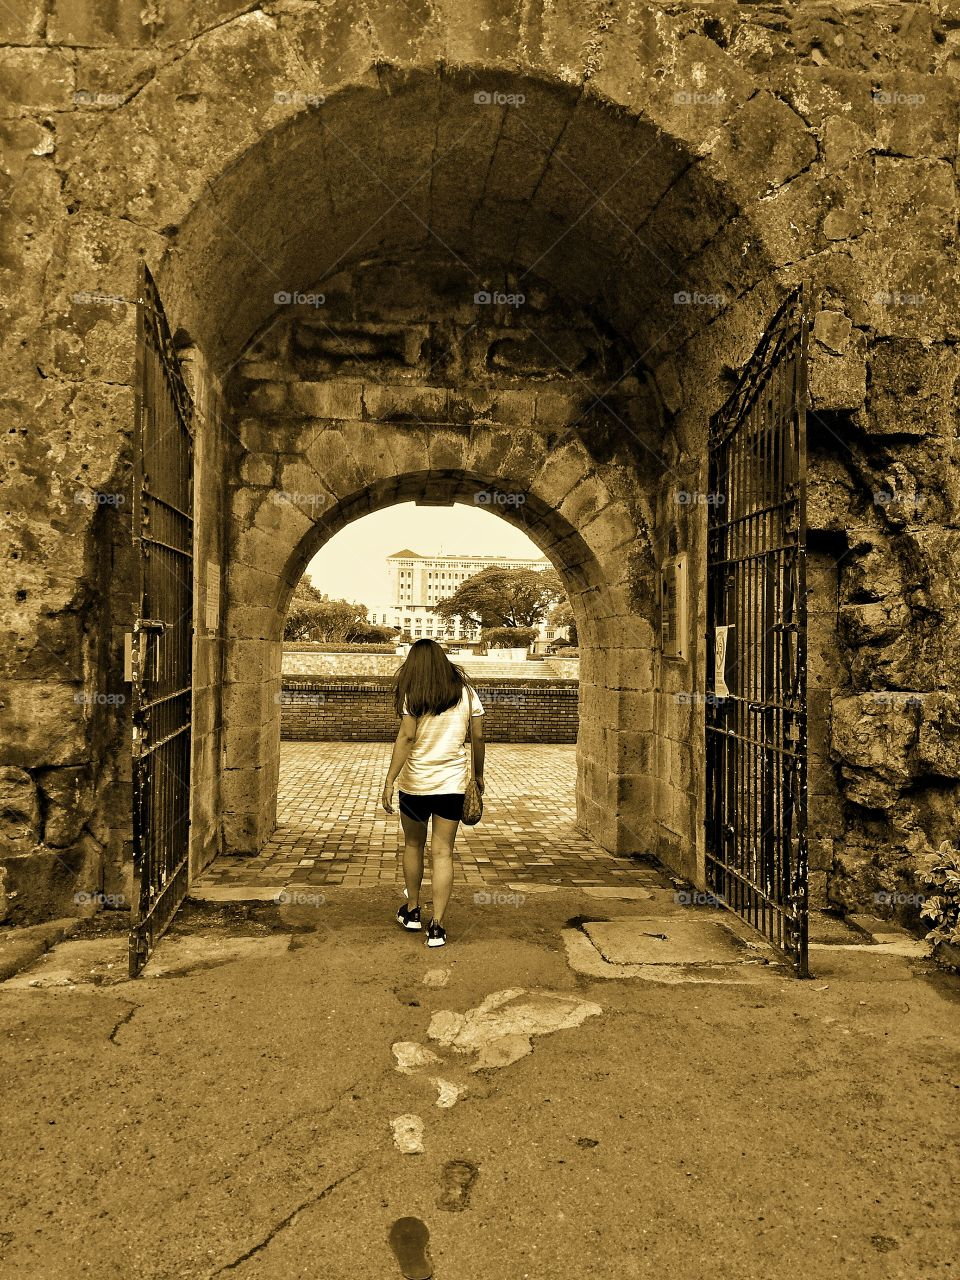 Fort Santiago is a citadel 1st built by Spanish navigator & governor Miguel López de Legazpi for the new established city of Manila in the PH. The defense fortress is part of the structures of the walled city of Manila referred to as Intramuros.